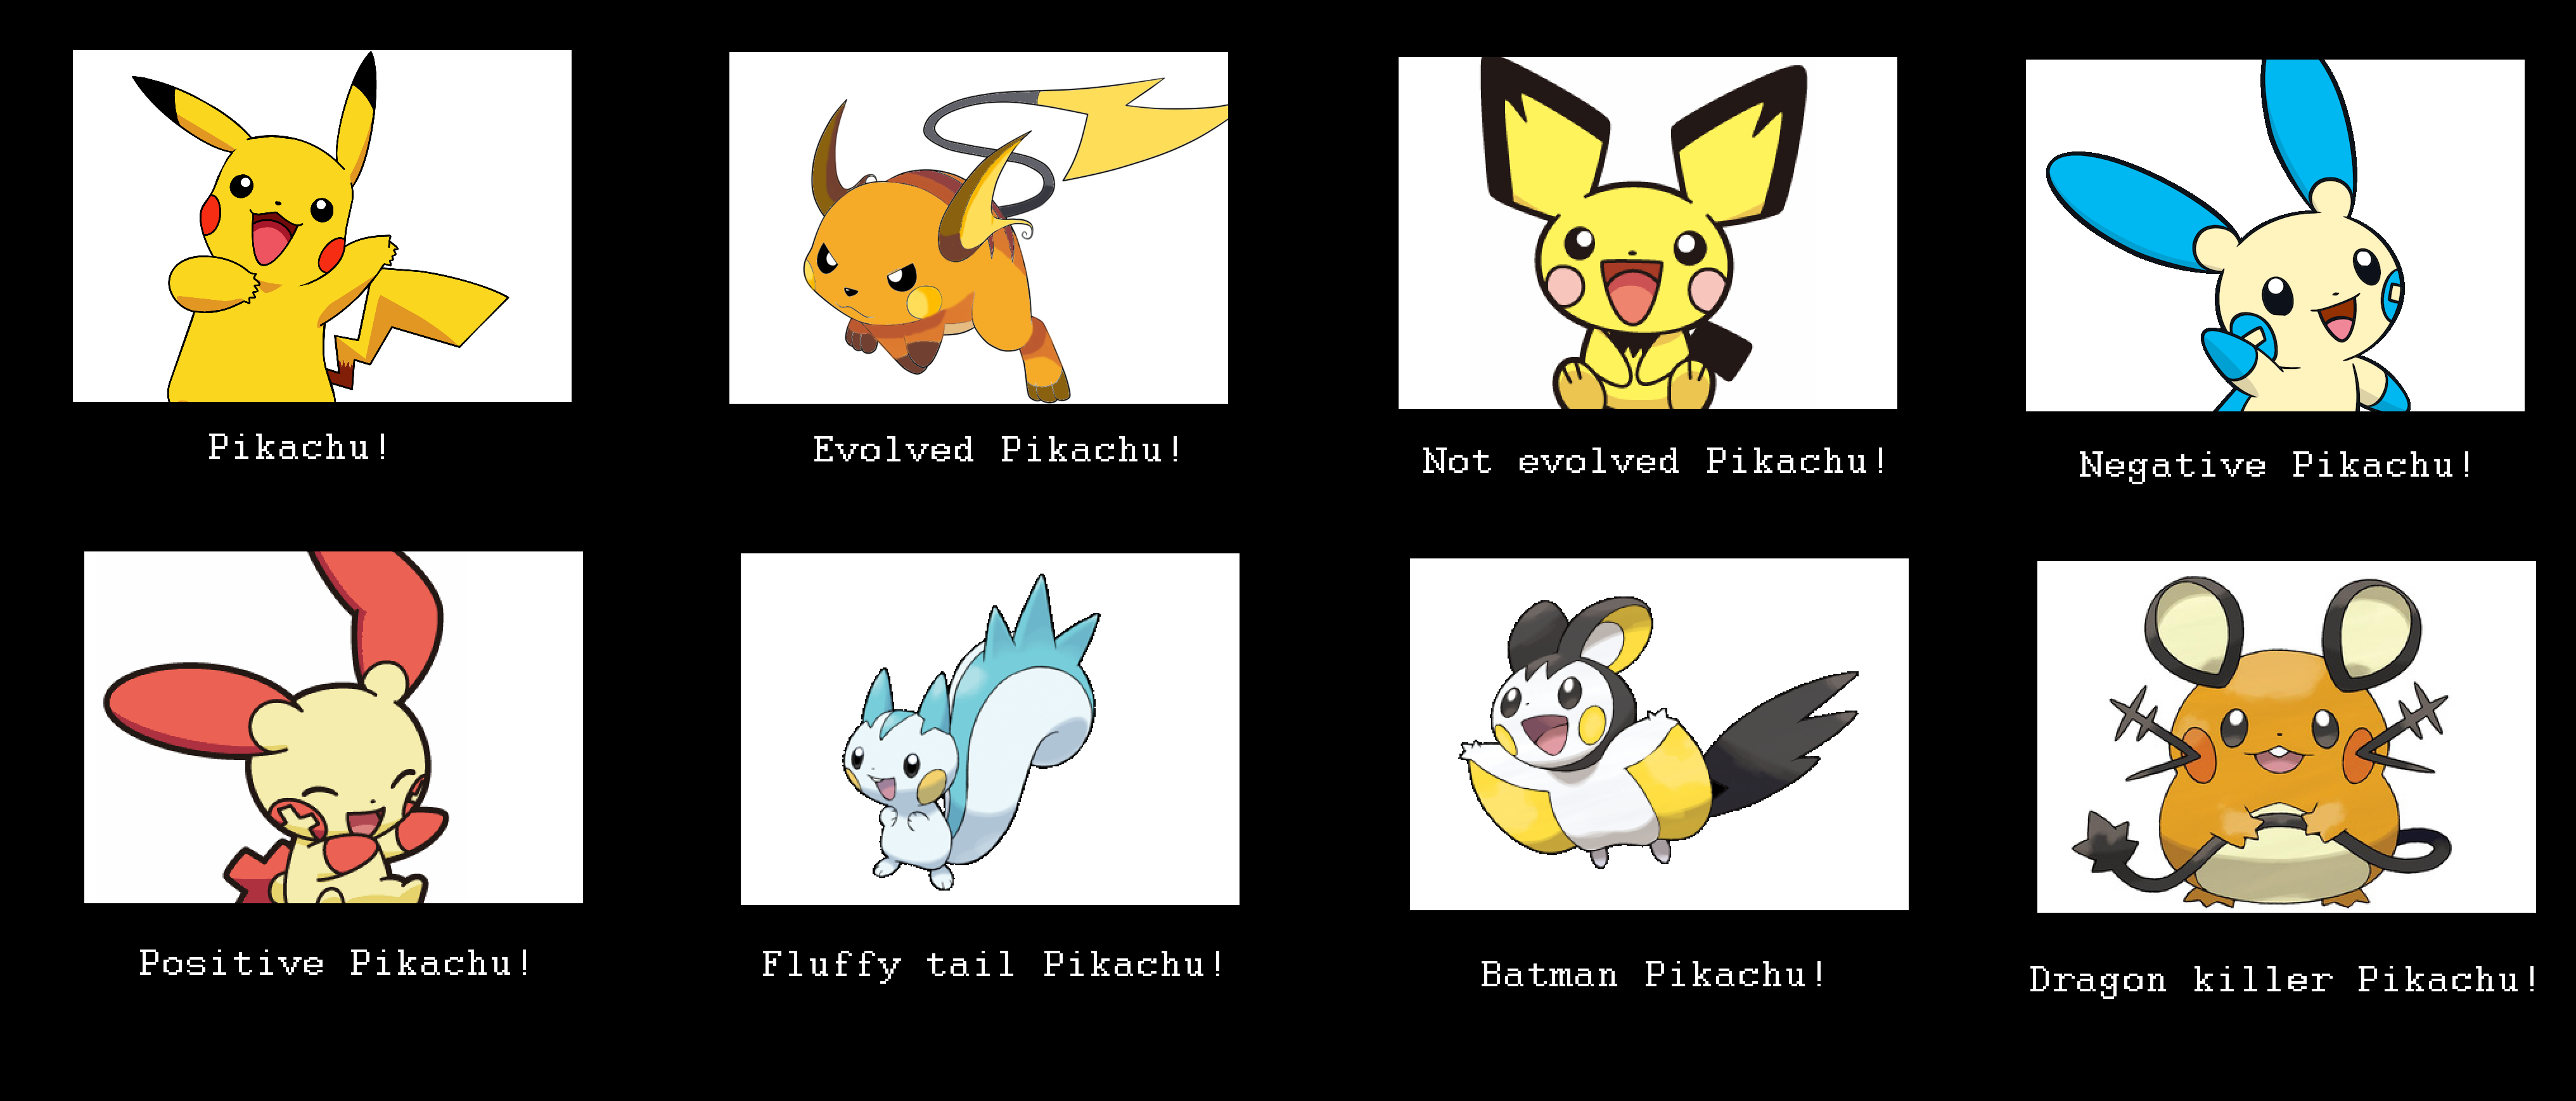 All Of The Pikachus Pokémon Know Your Meme